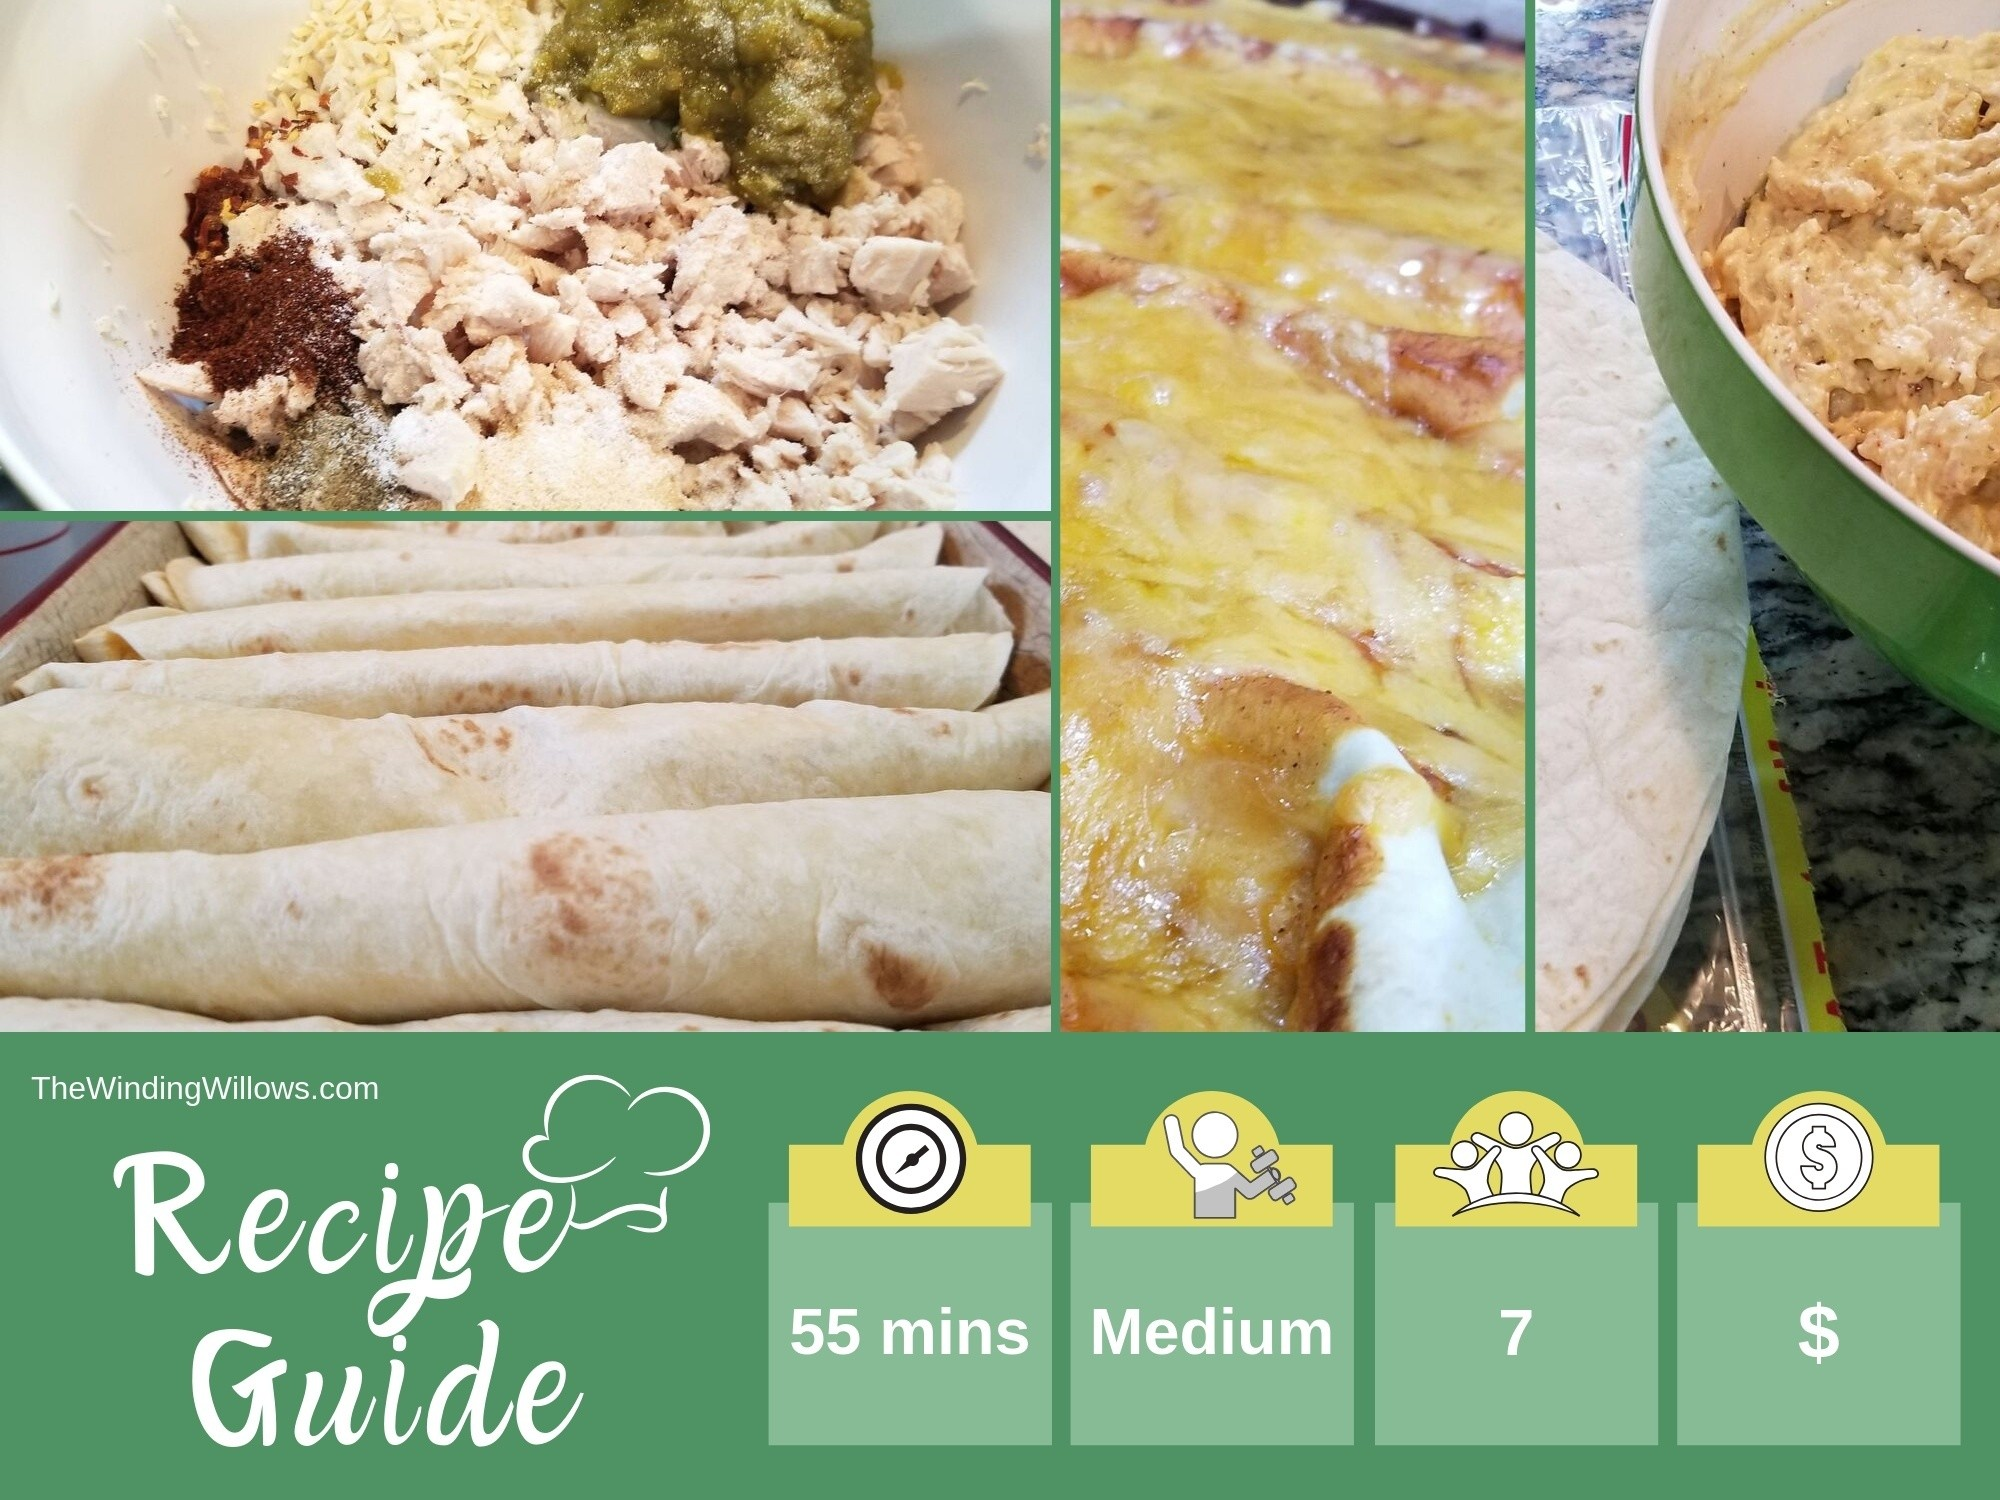 These zesty cream cheese chicken enchiladas are a super easy, super delicious, super kid-friendly Mexican dish! You can prep ahead of time and have a great weeknight meal. Easy Dinner | Stepmom | Chronic Illness | Mexican Food | Red Chili | Delicious Dinner